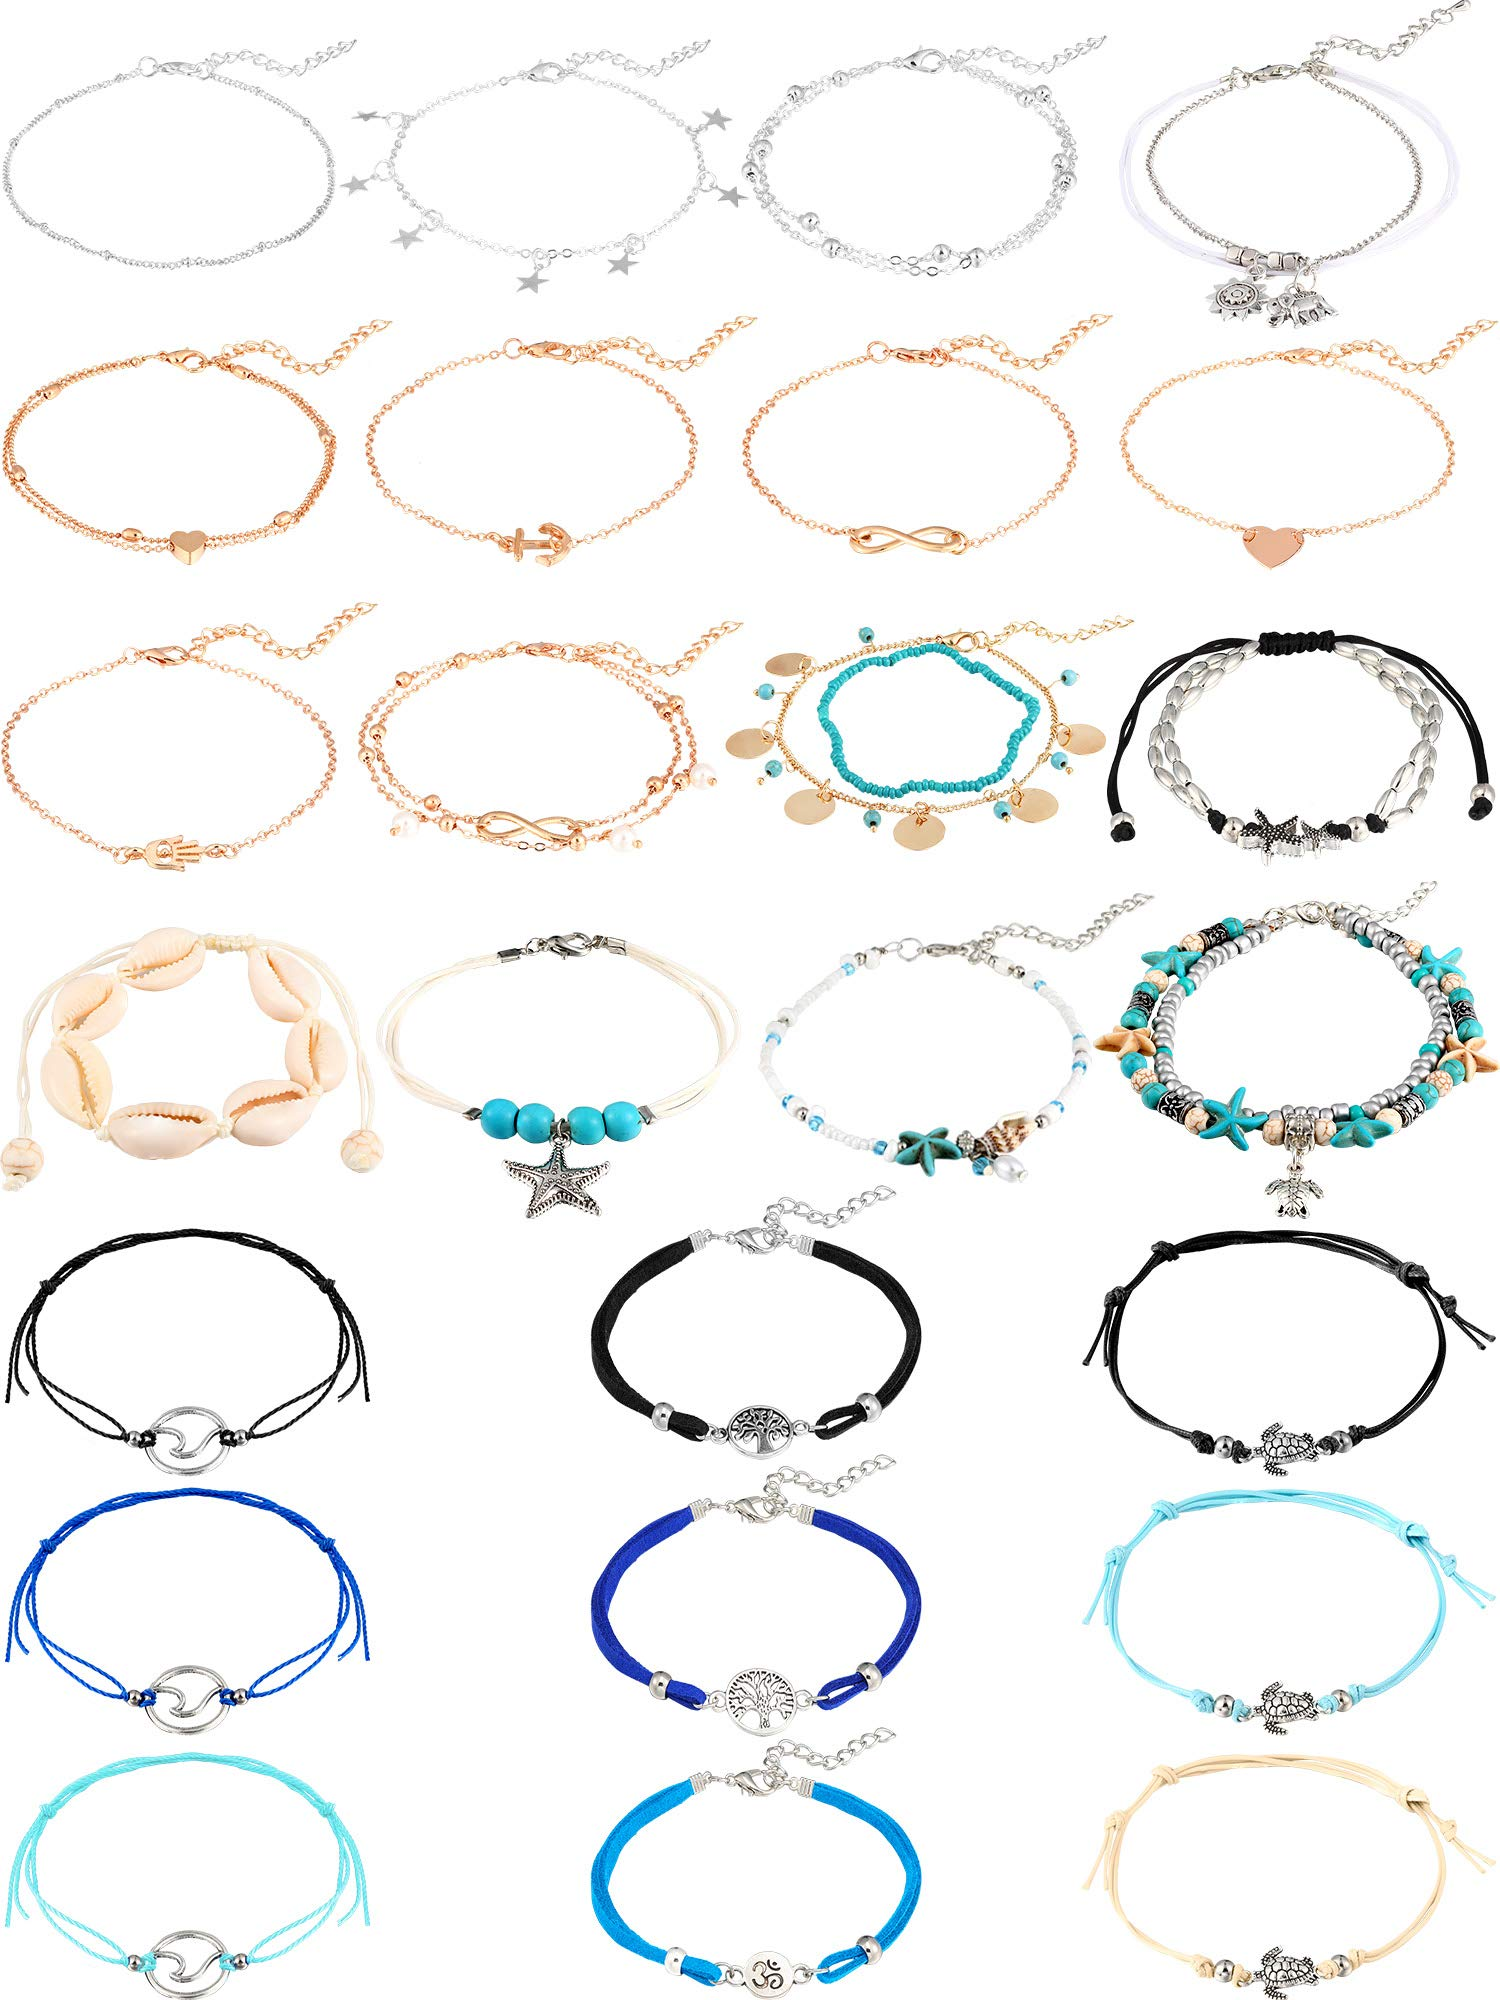 25 Pieces Anklets Bracelets Turtle Chain Anklets Starfish Elephant Life Tree Anklet Adjustable Beach Shell Foot Chain Jewelry for Women Girls